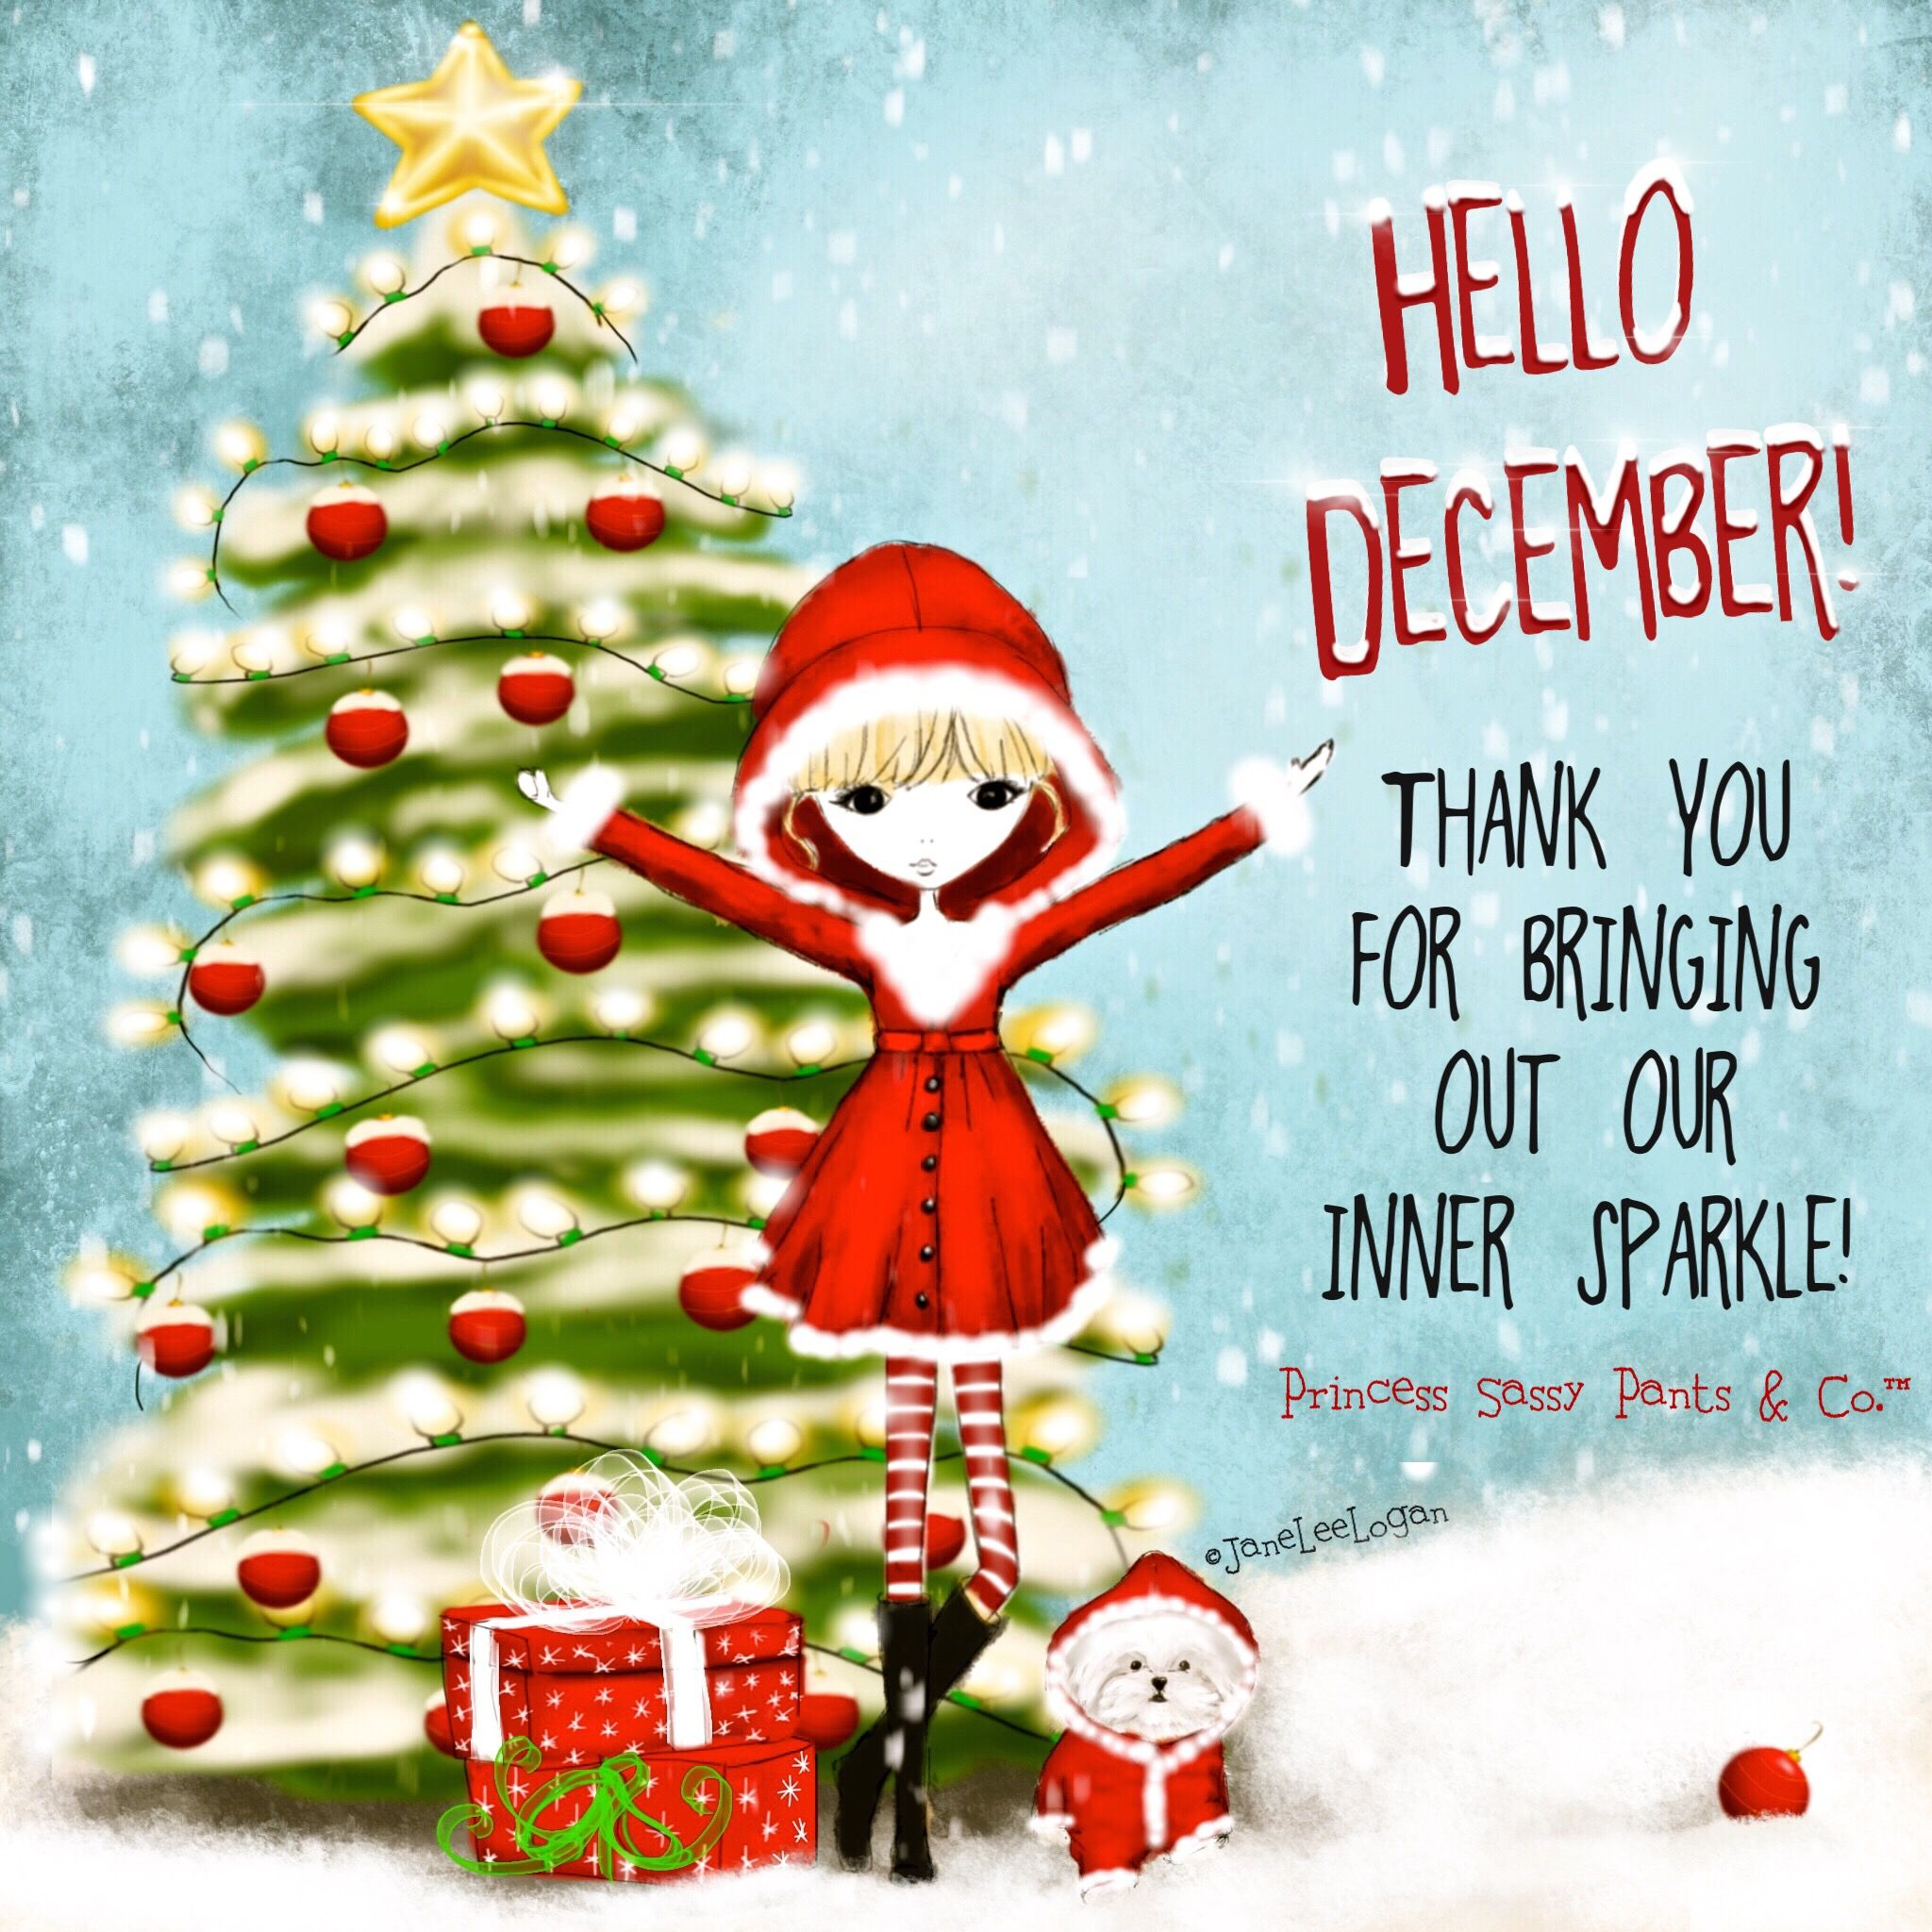 Hello December My Favorite Time Of Year I Love The Lights The Decorations The Music Giving Gifts And Of Course The Sassy Pants Hello December Pants Quote